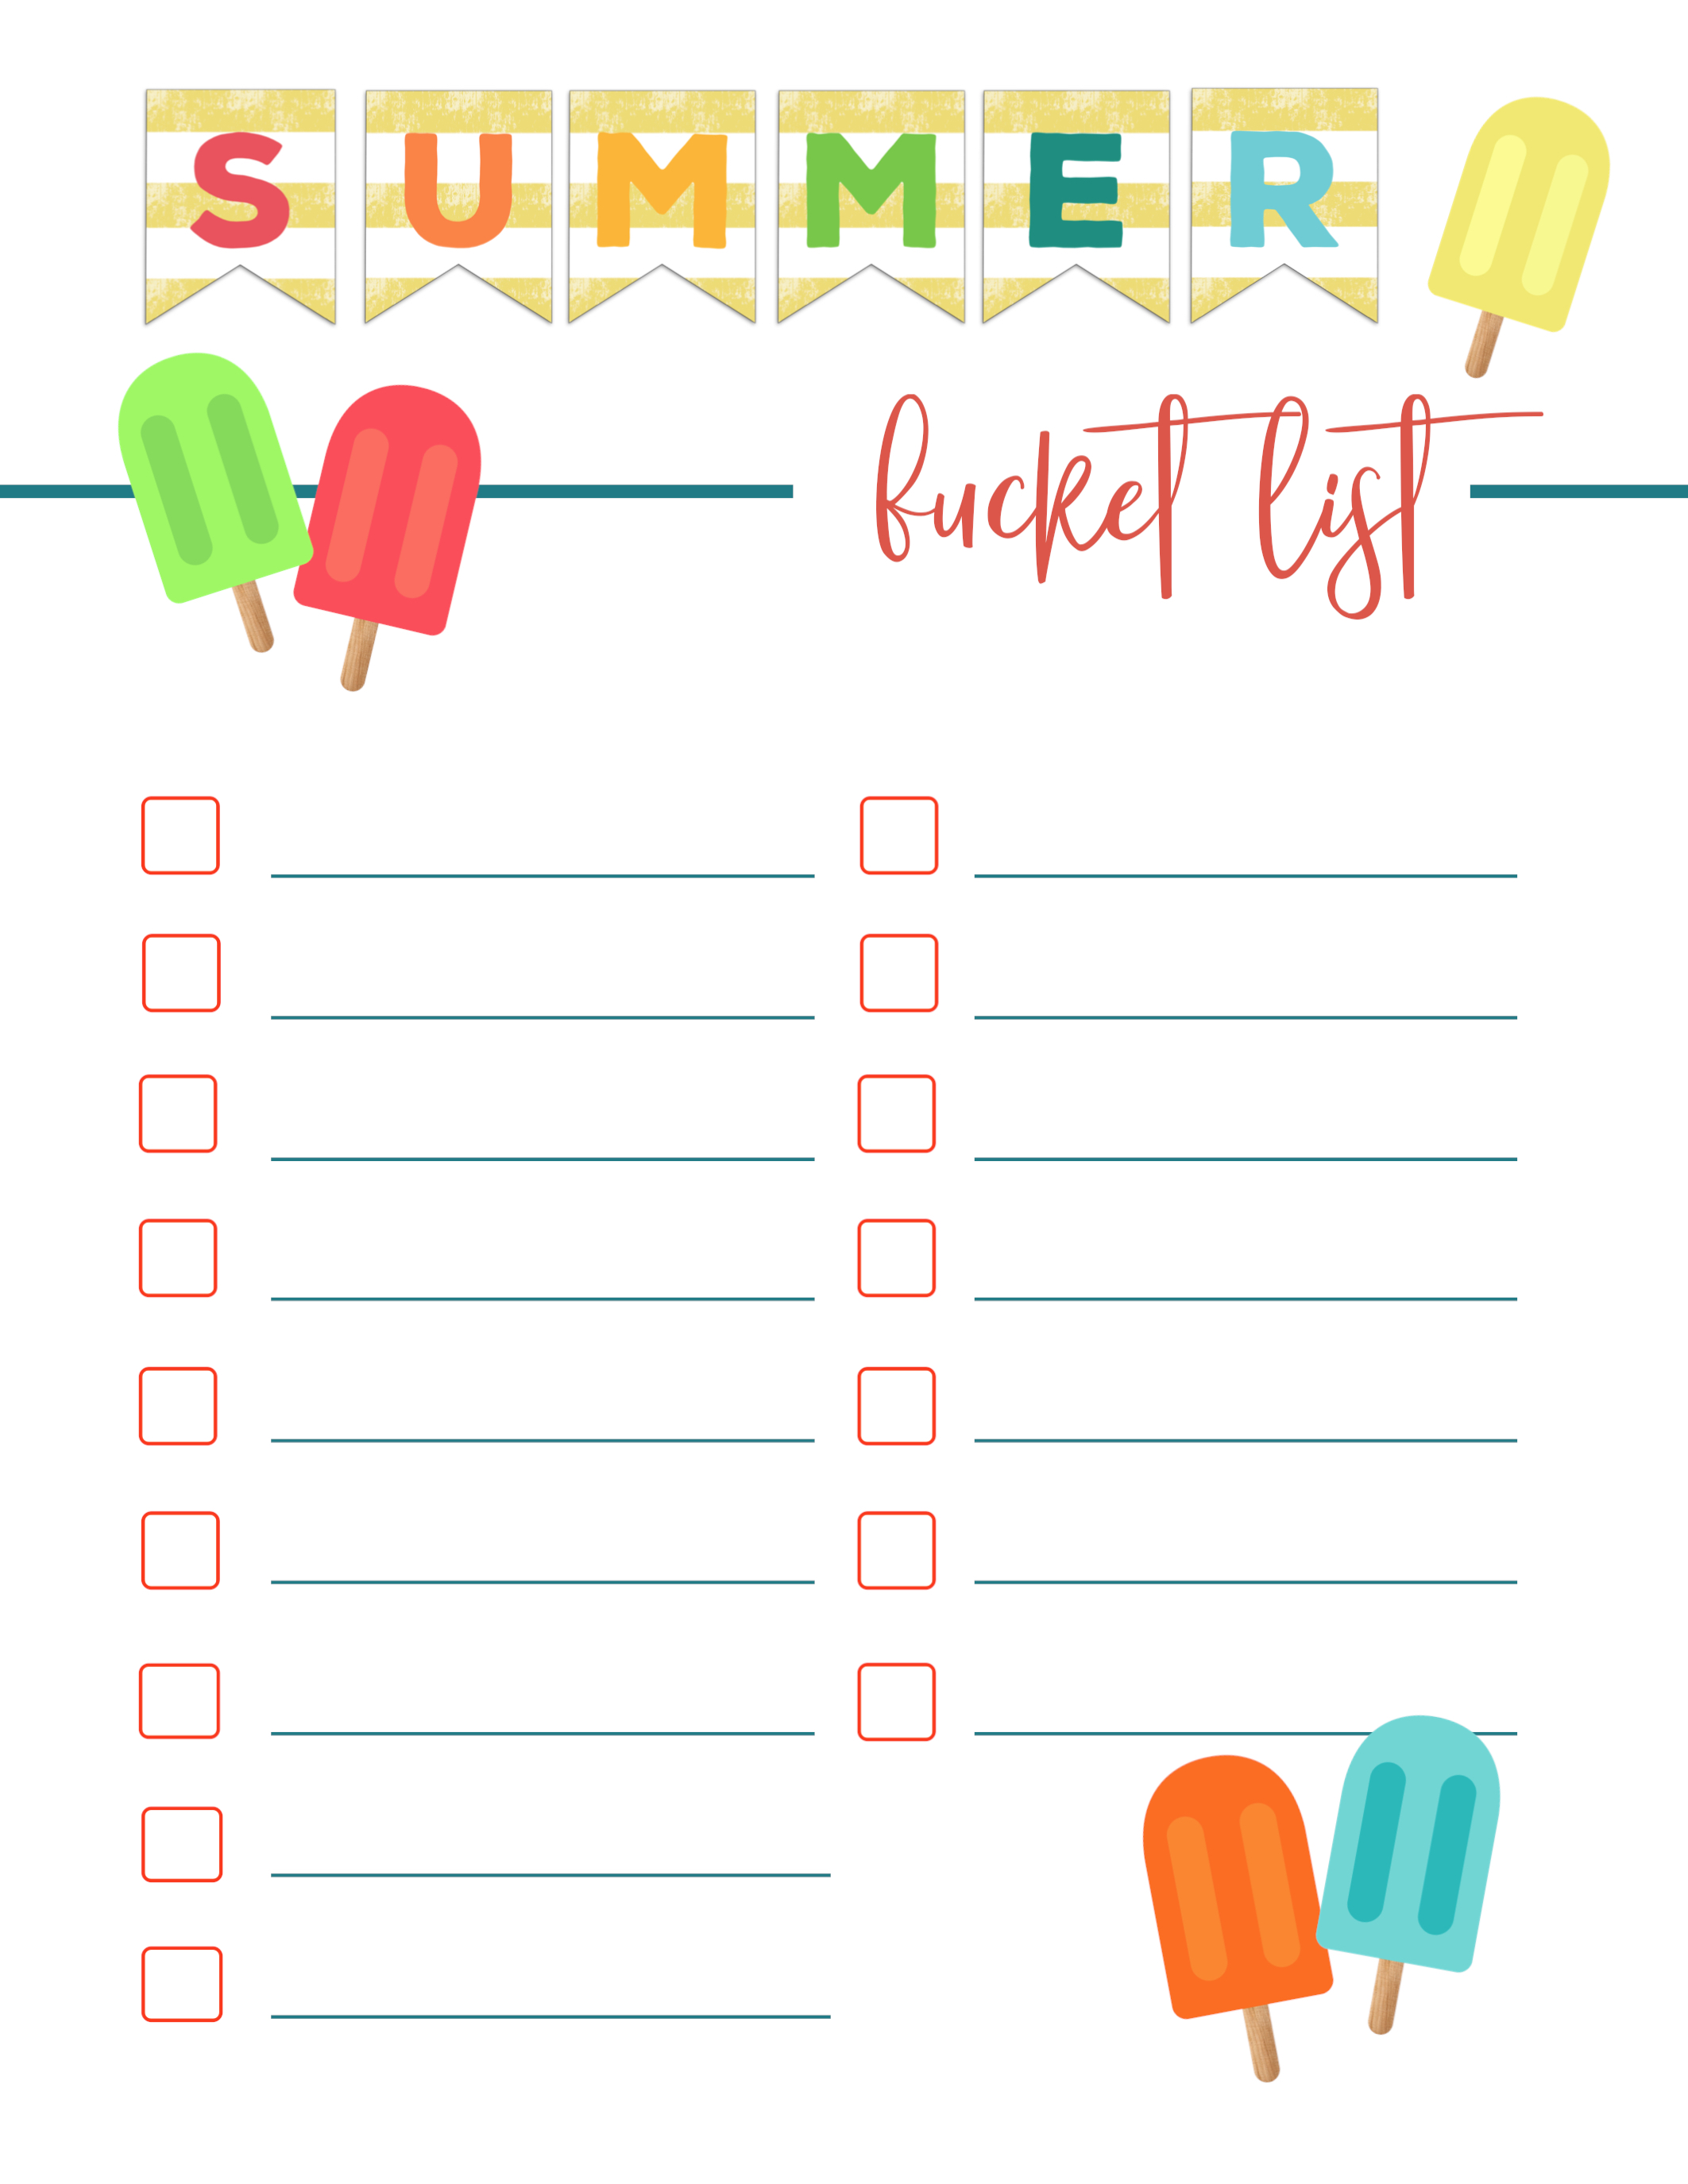 free printable summer bucket list ideas template - paper trail design